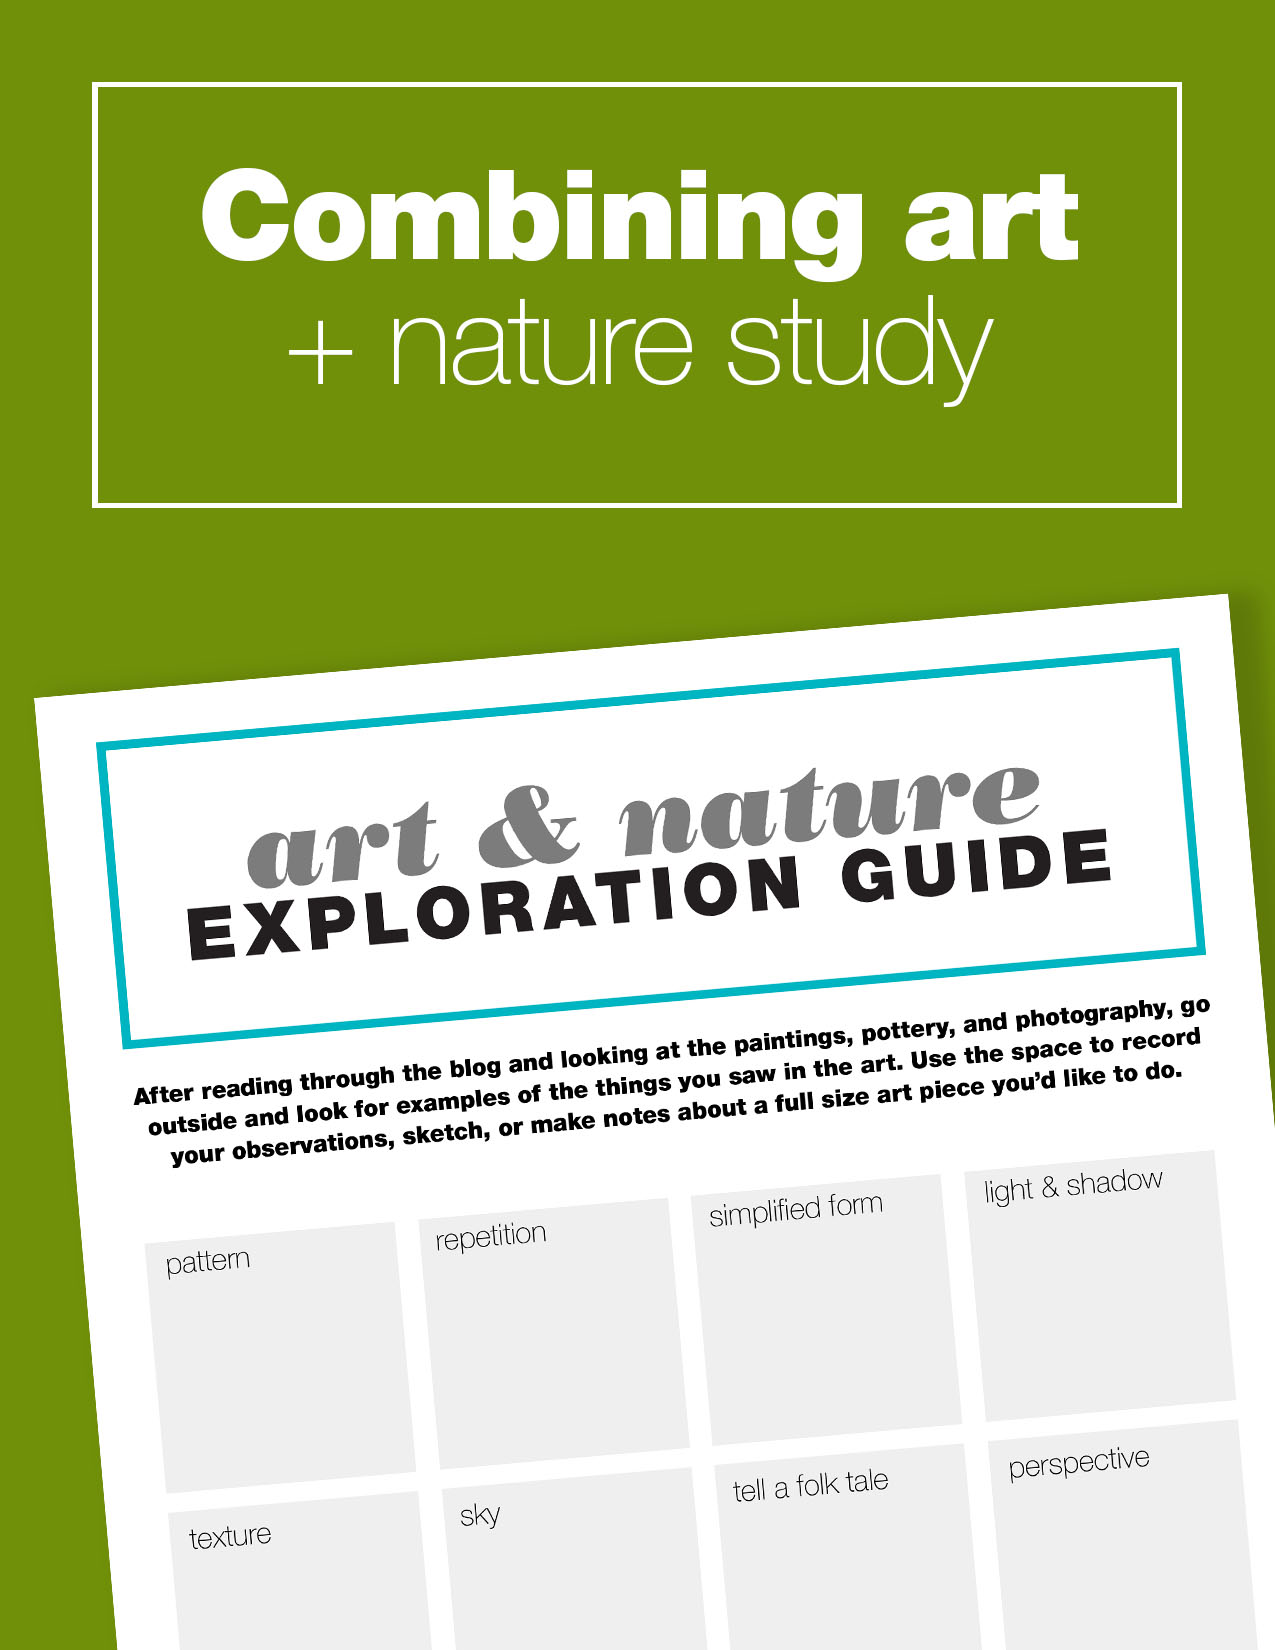 Free printable guide to lead you through an art history and nature study lesson for kids.